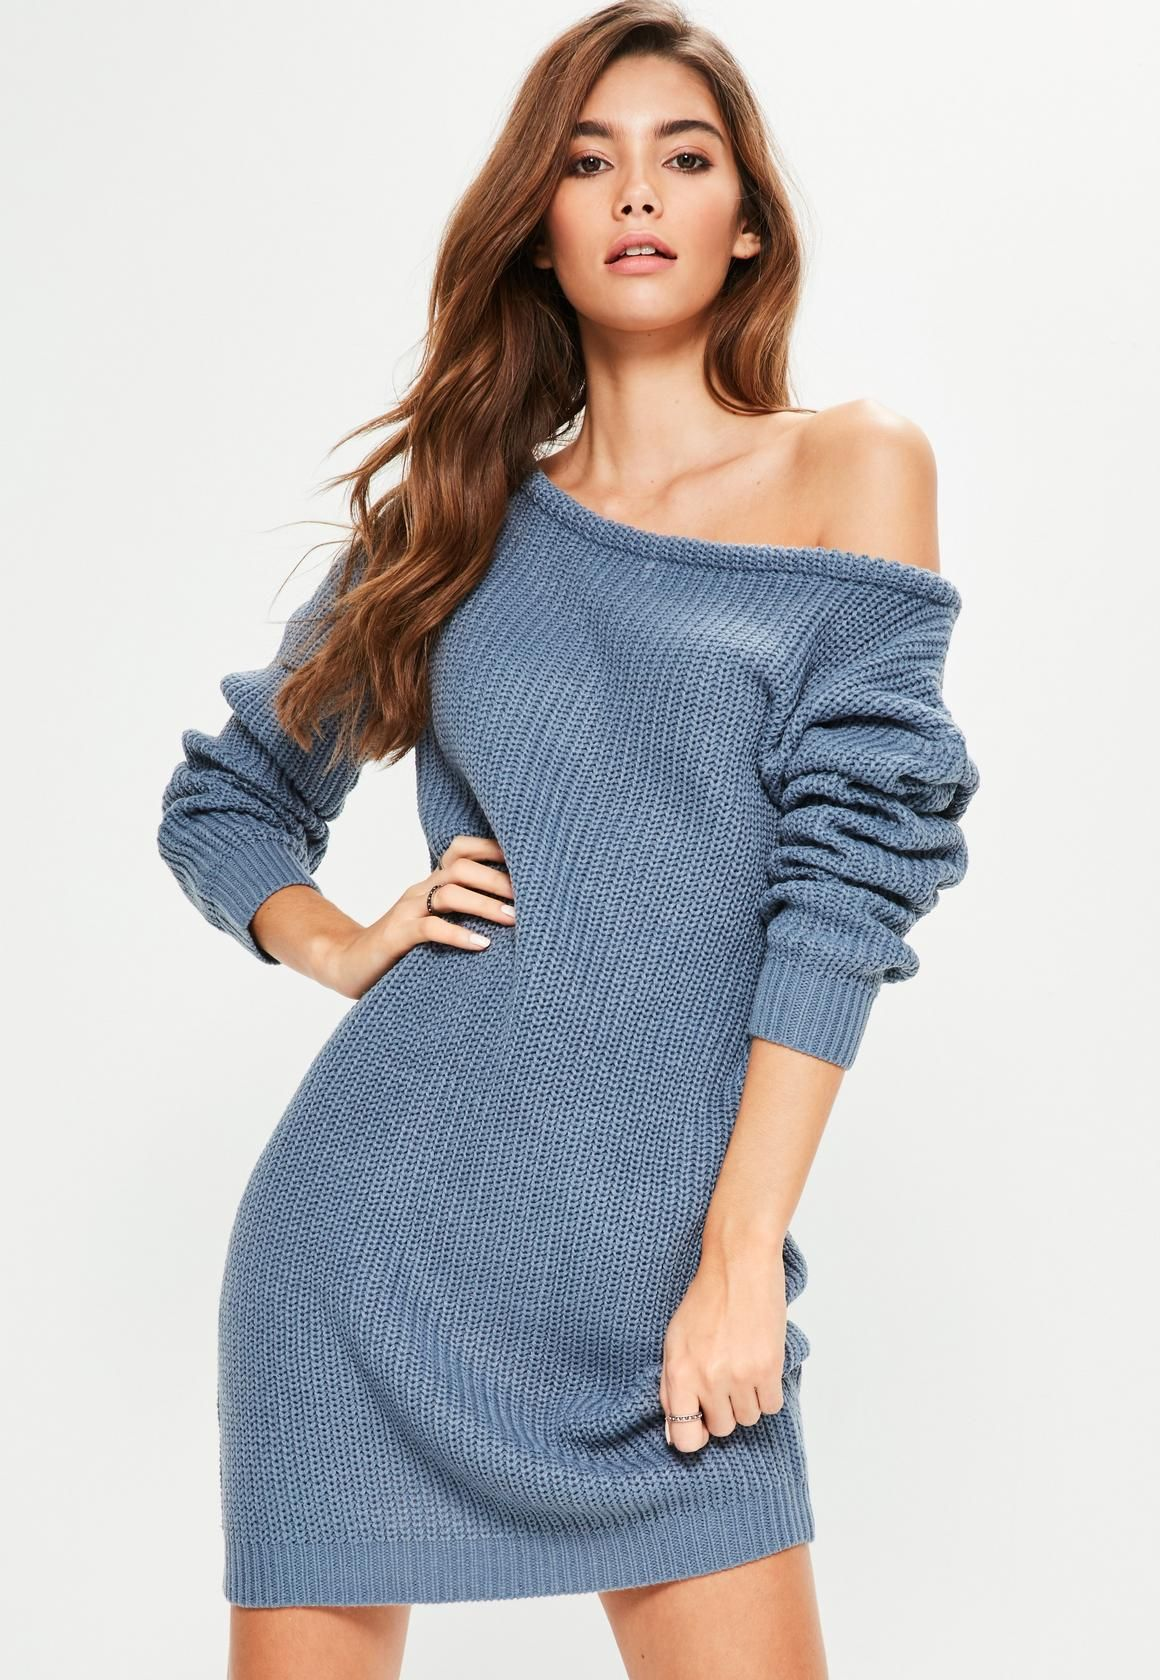 Blue Off Shoulder Knitted Sweater Dress | Missguided, Jumper dress ...